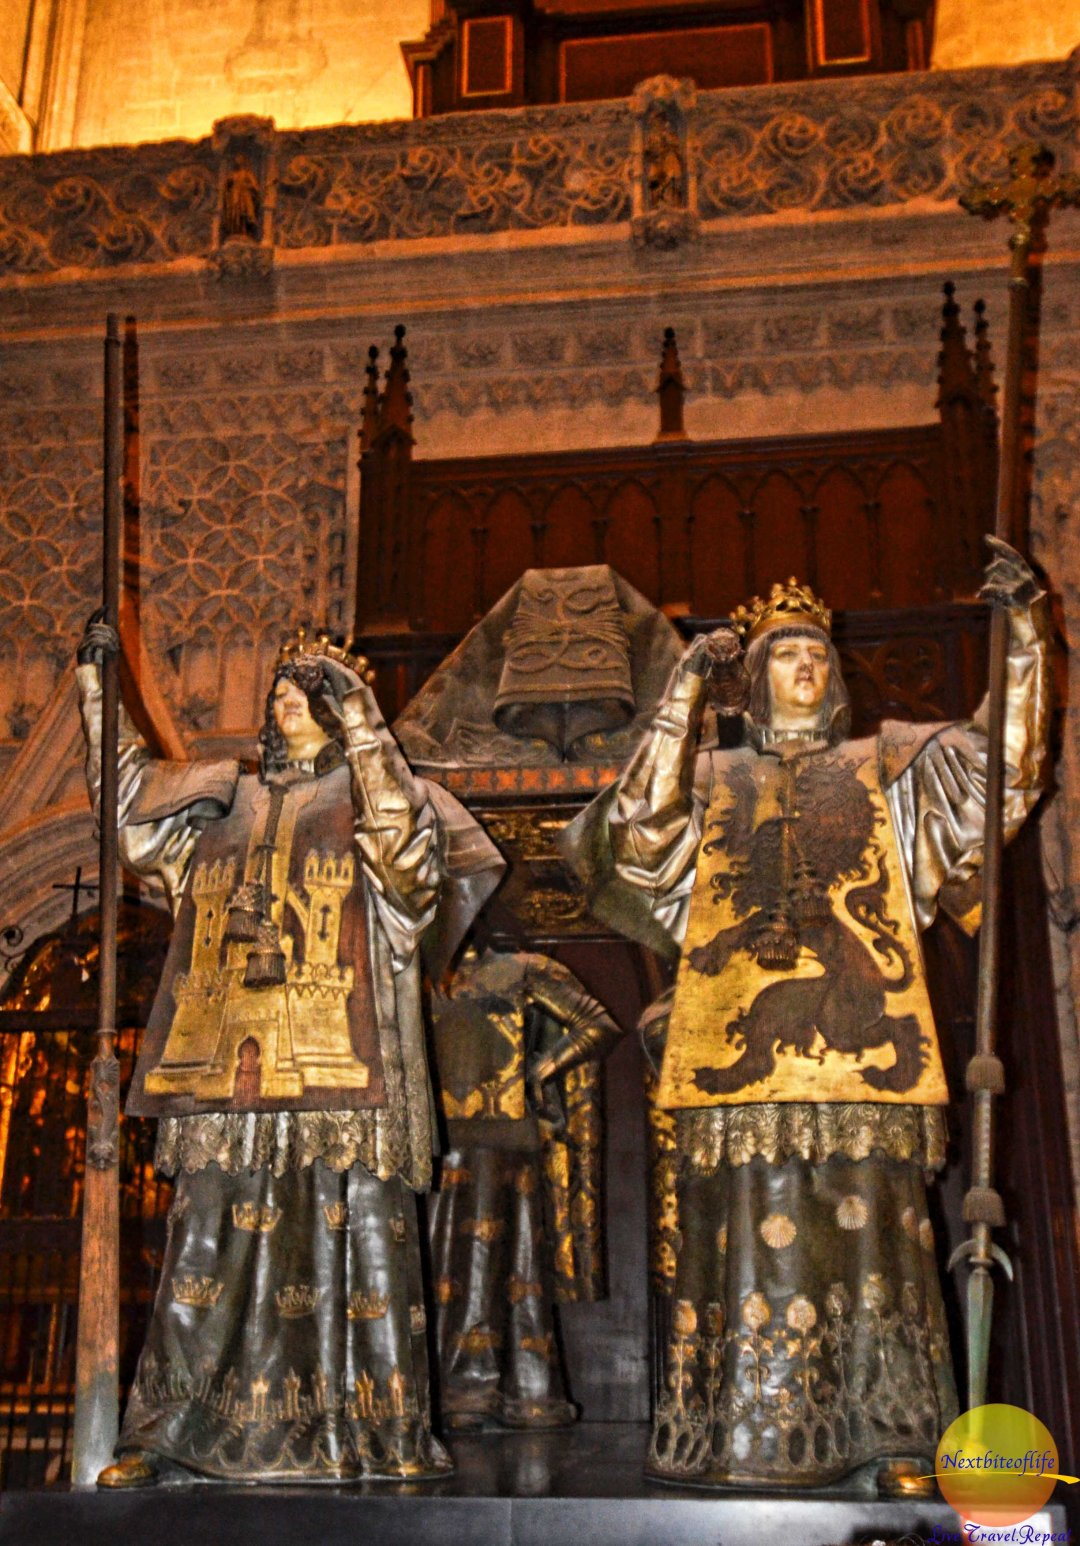 christopher columbus tomb at seville cathedral